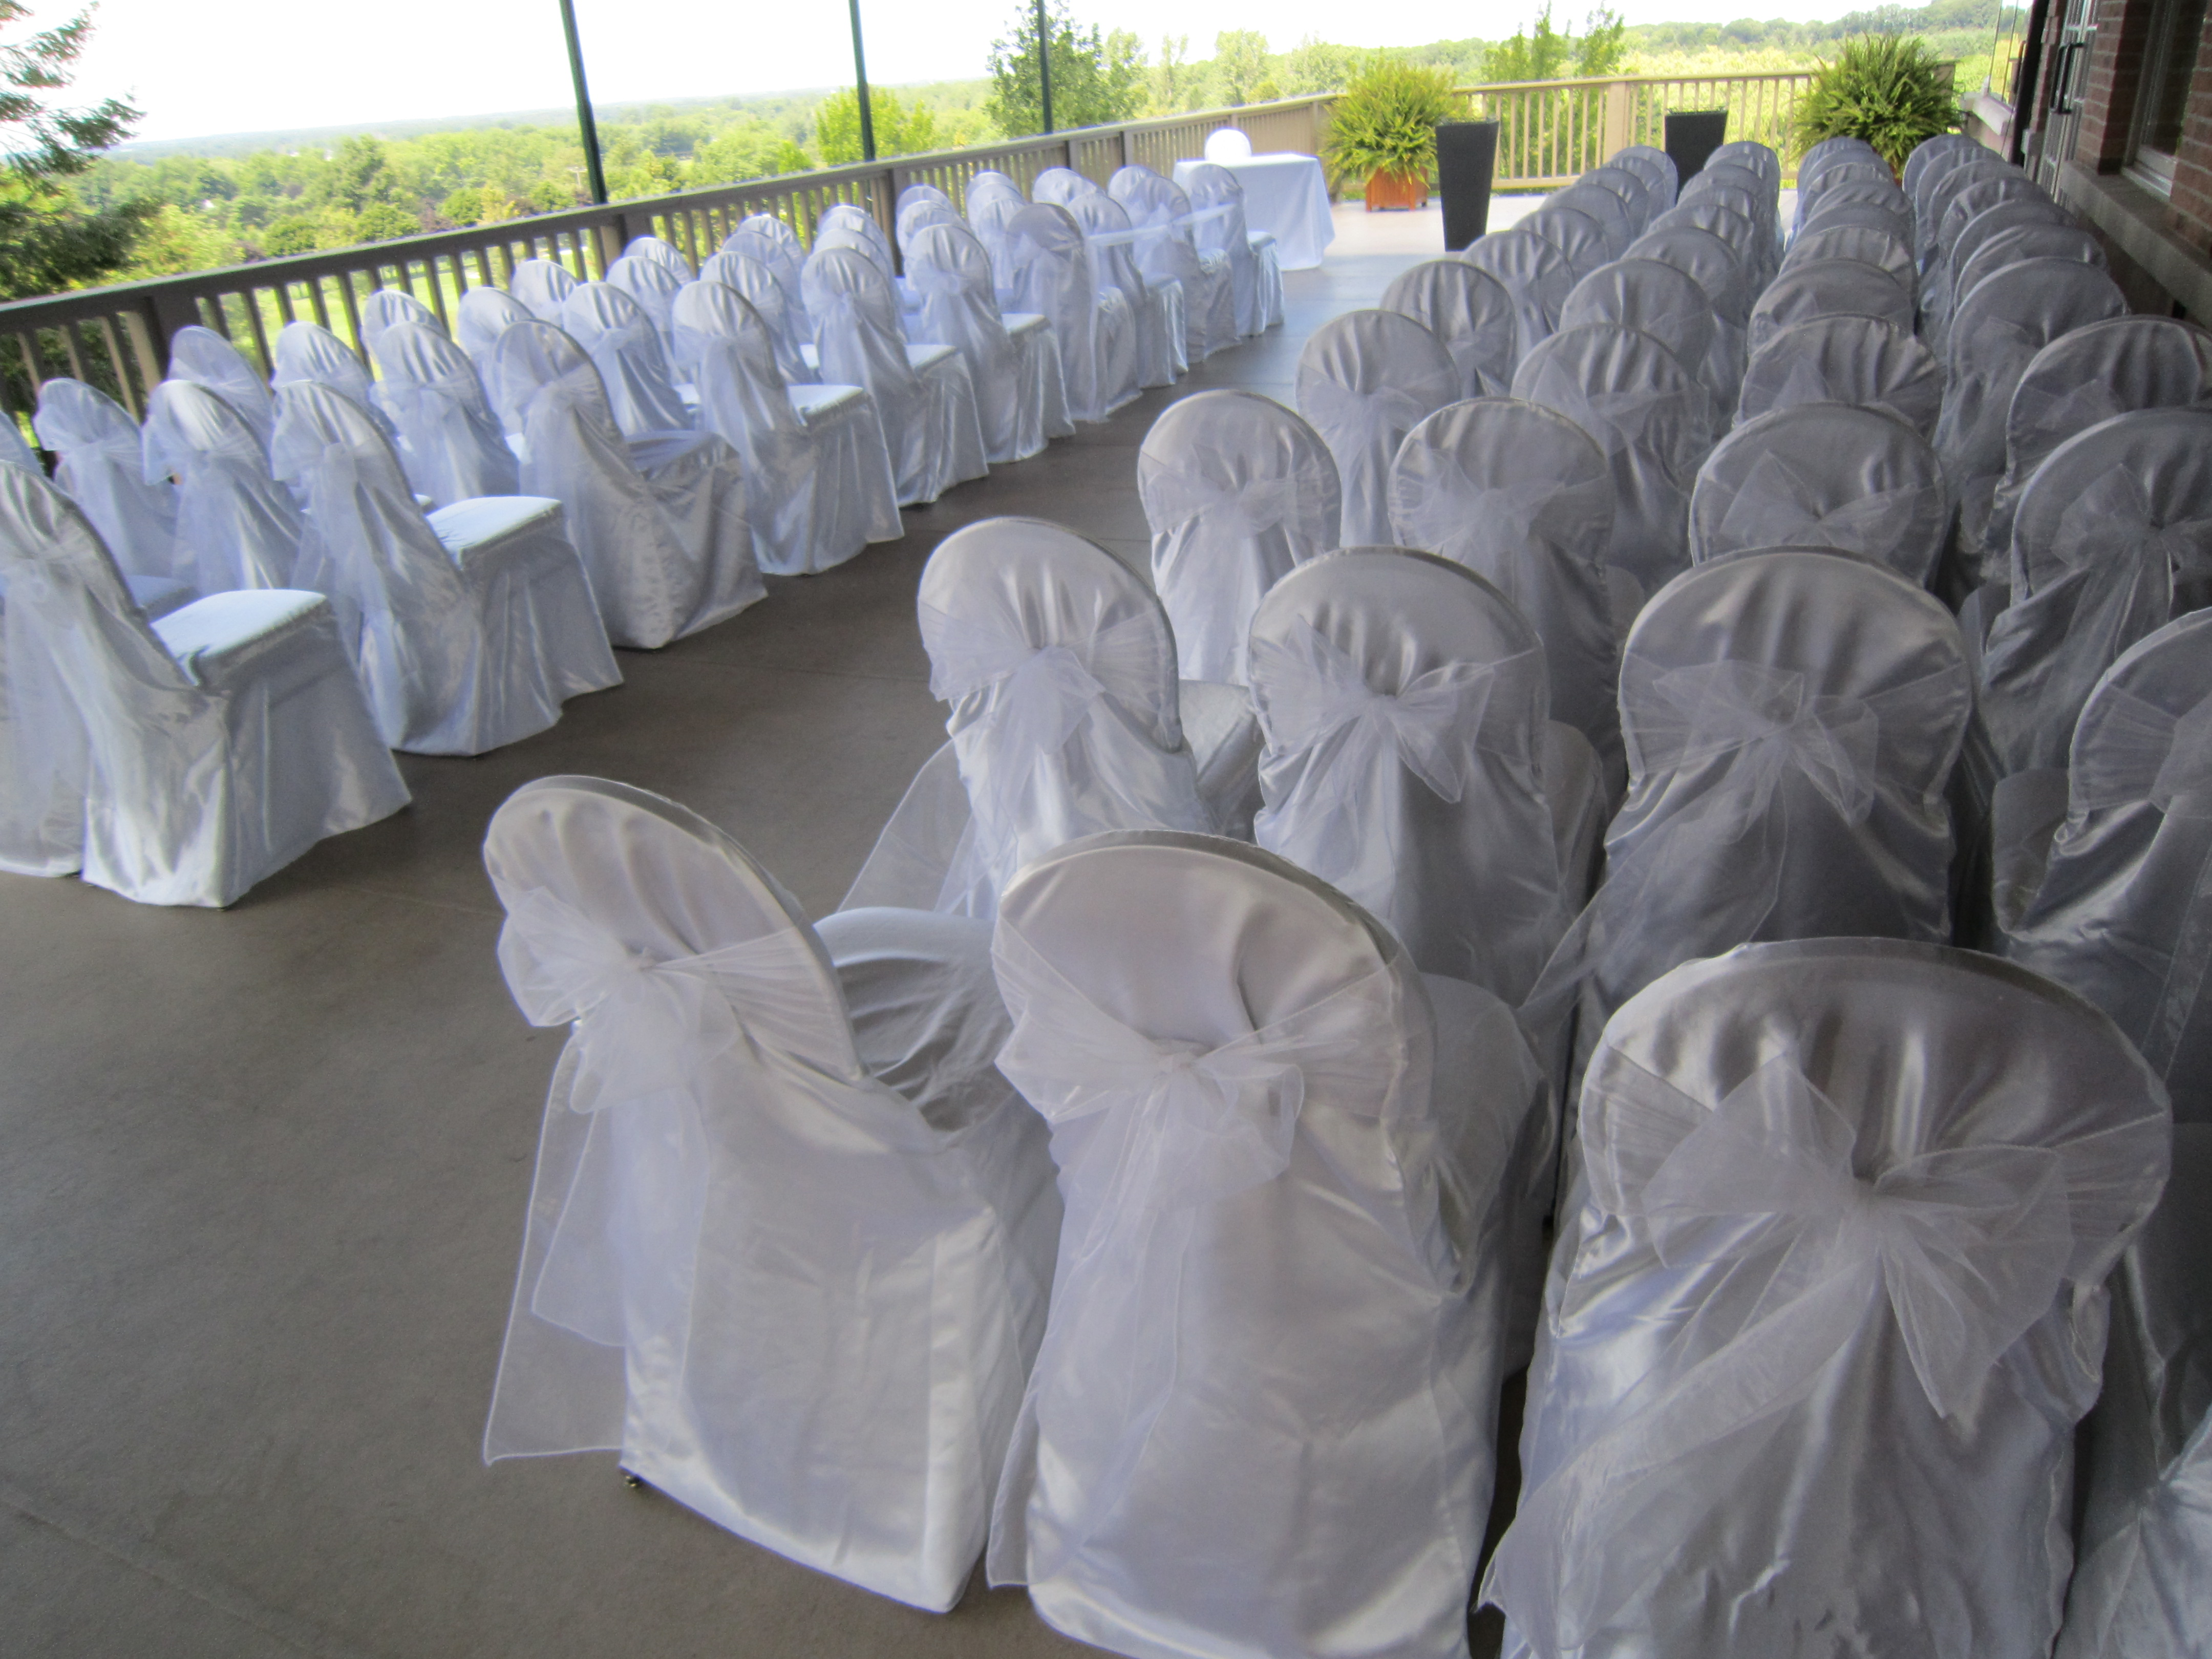 Wedding chairs black and white - White Chair Covers